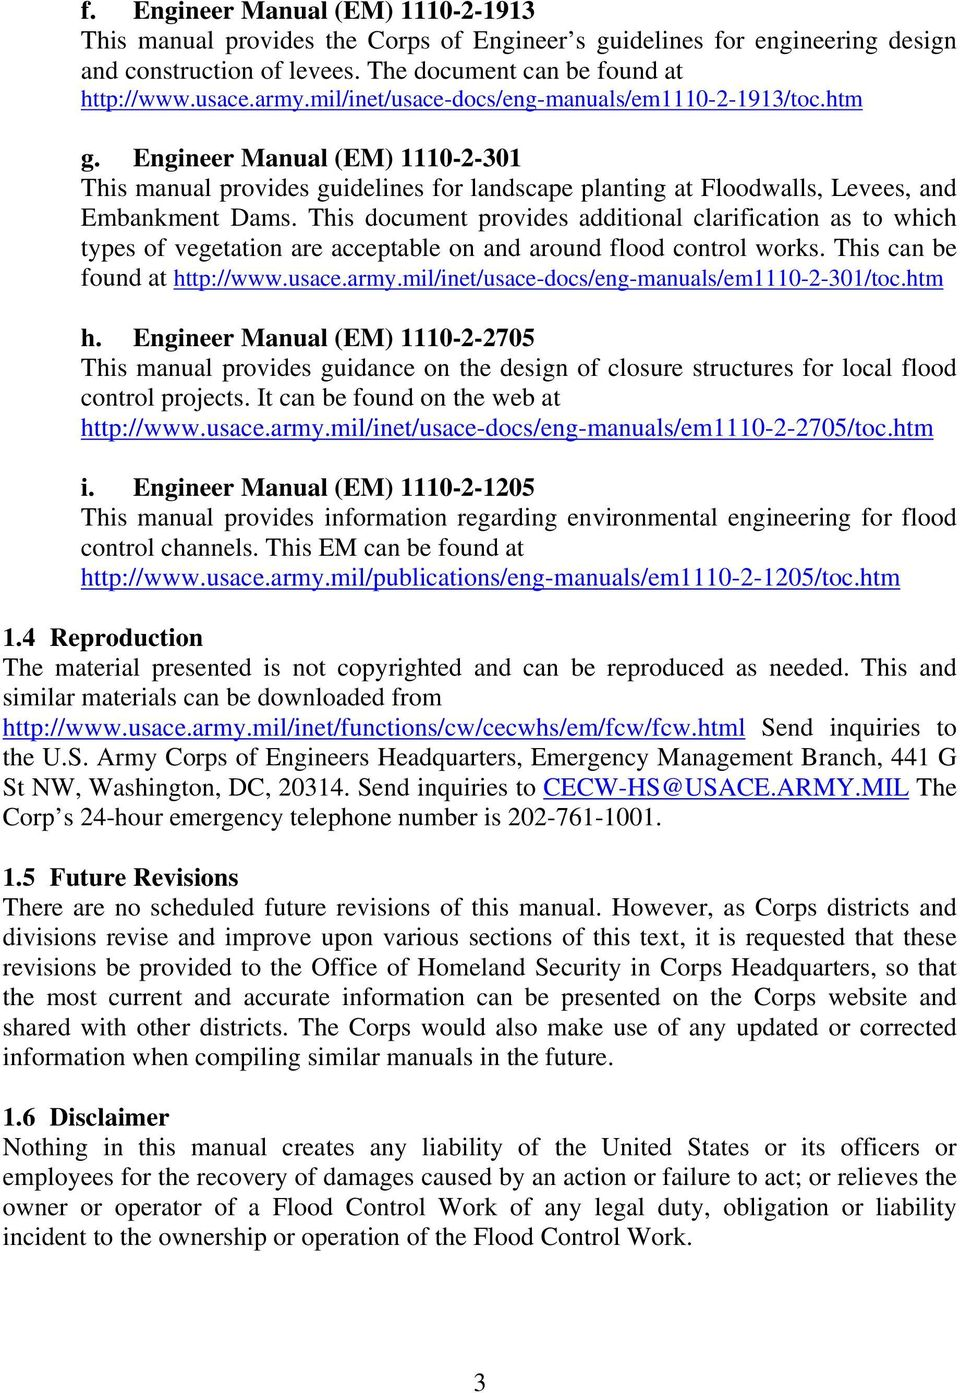 This document provides additional clarification as to which types of vegetation are acceptable on and around flood control works. This can be found at http://www.usace.army.